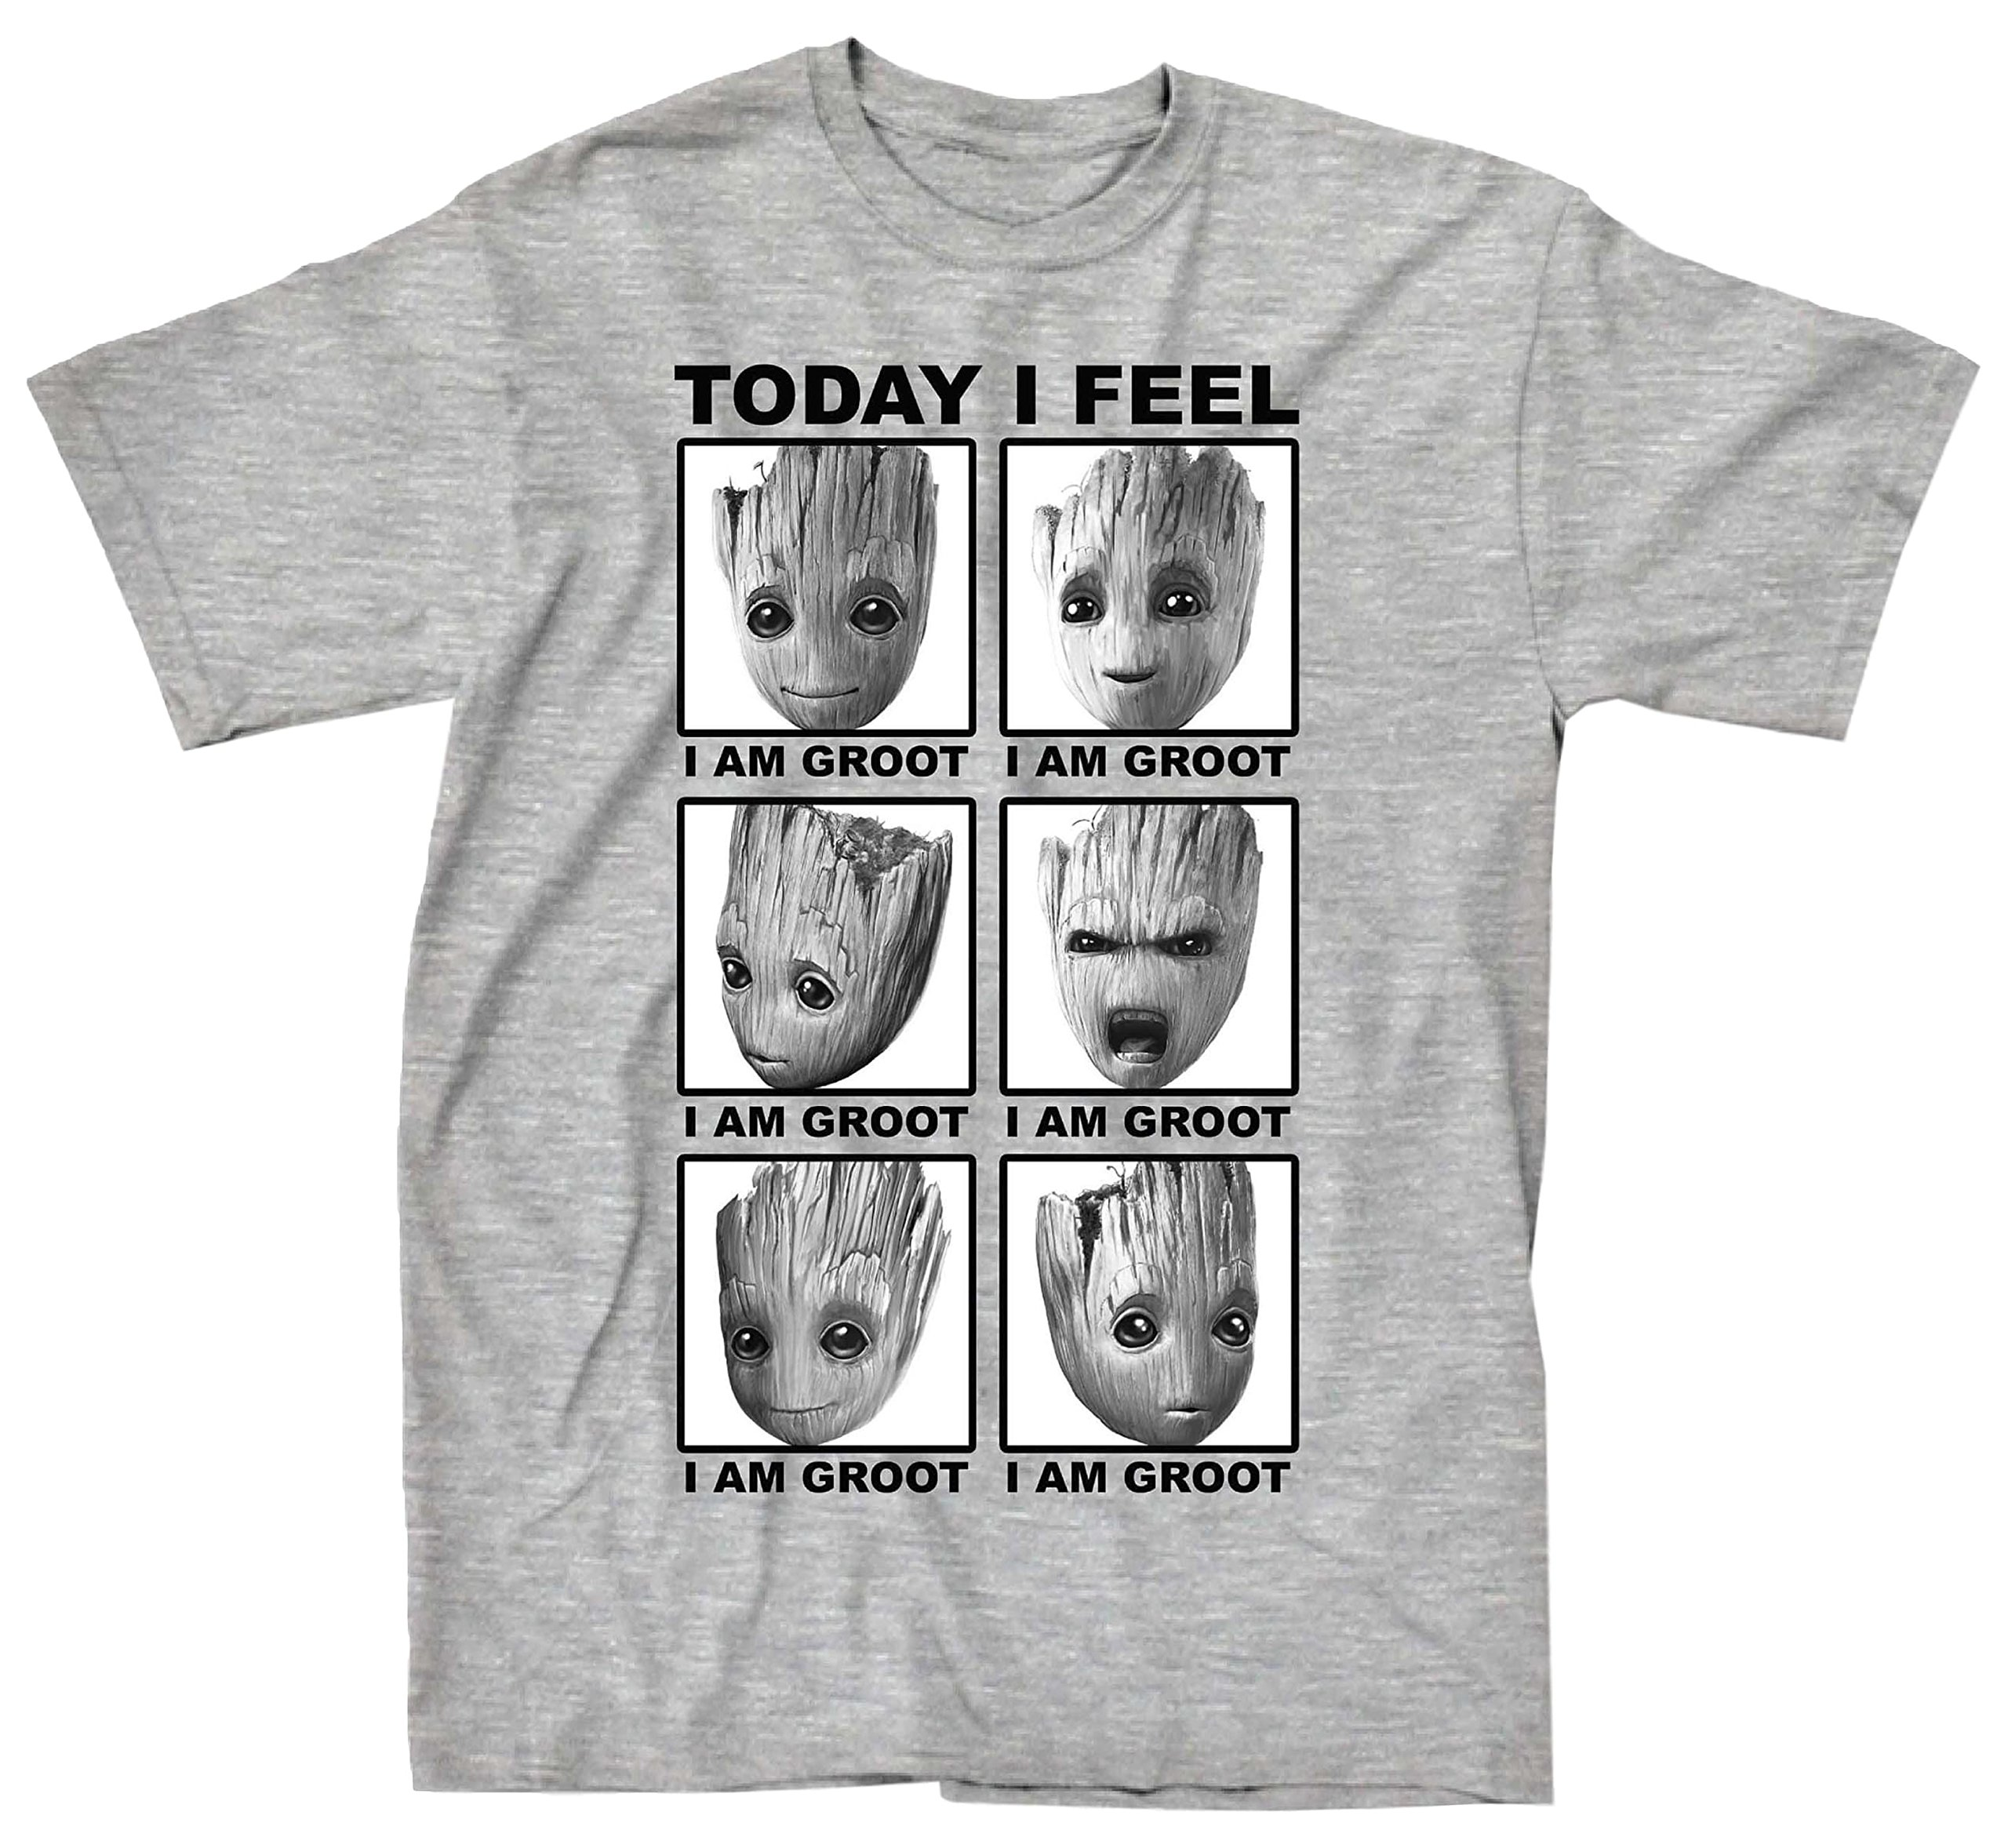 Marvel Guardians Of The Galaxy 2 Face Of Groot I Feel T-shirt (Extra Large , Heather Grey)